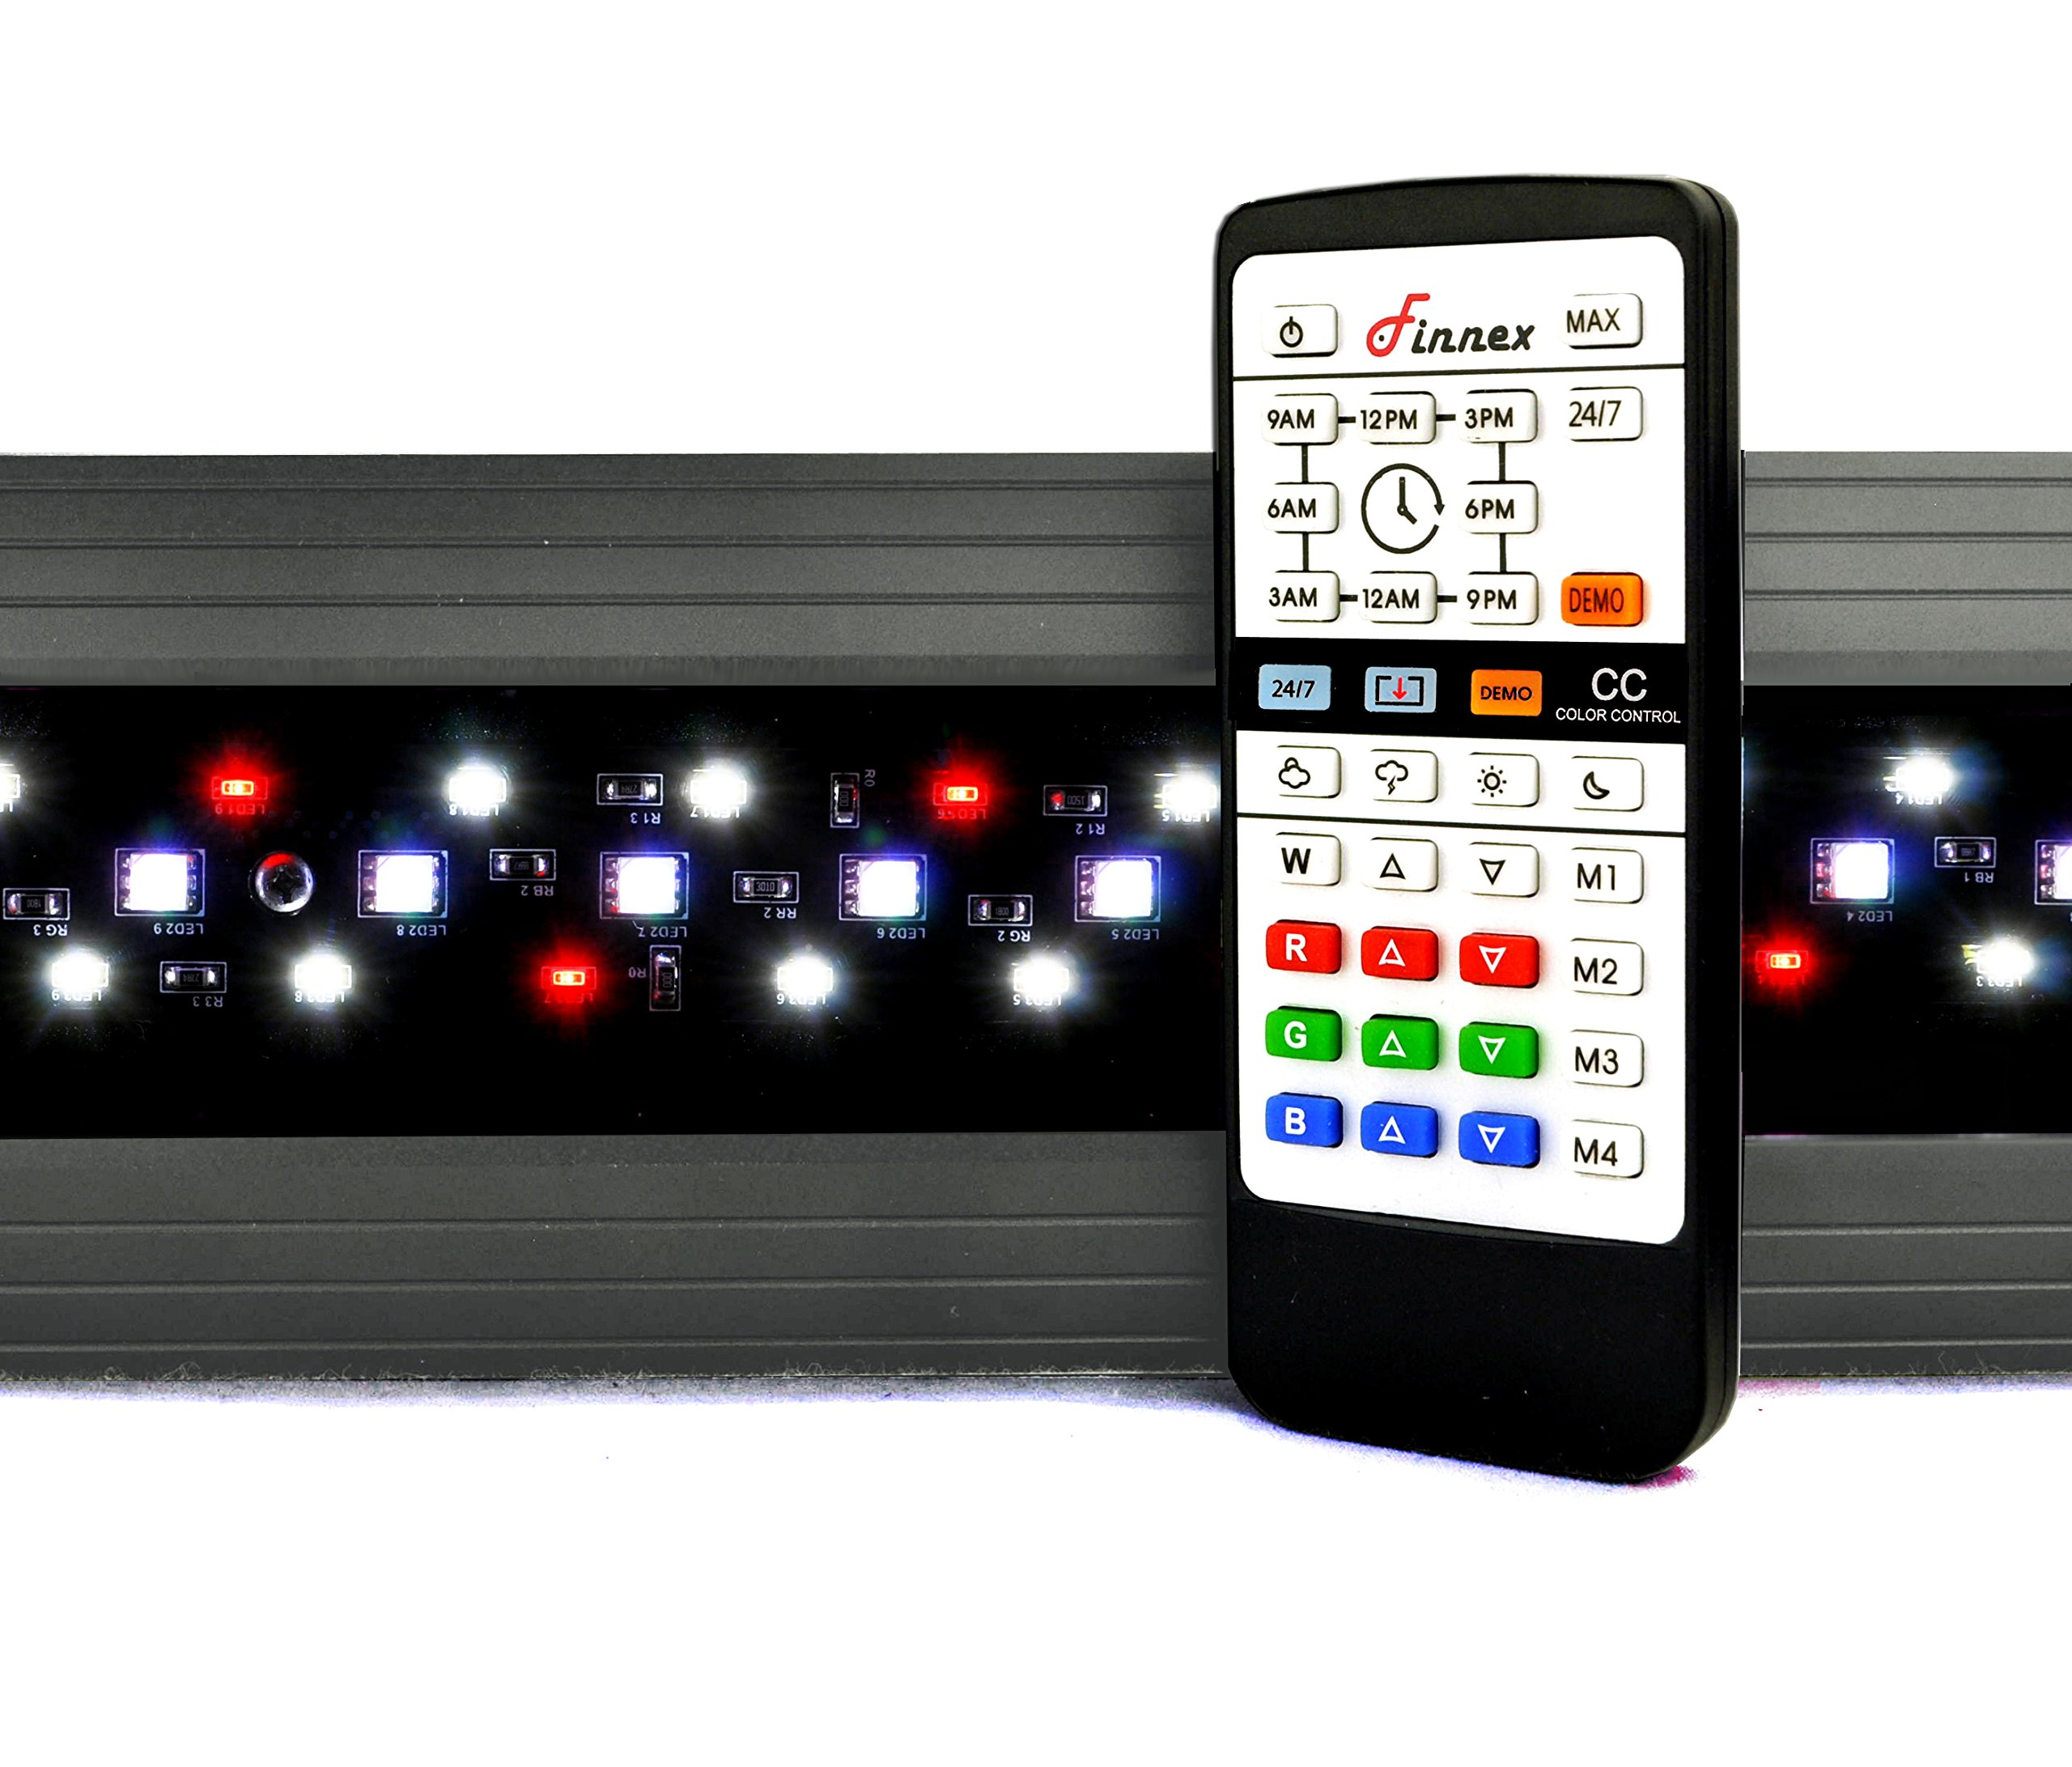 Finnex Planted+ 24/7 Fully Automated Aquarium LED Fixture, 660nm Red LEDs, CC or SE Series